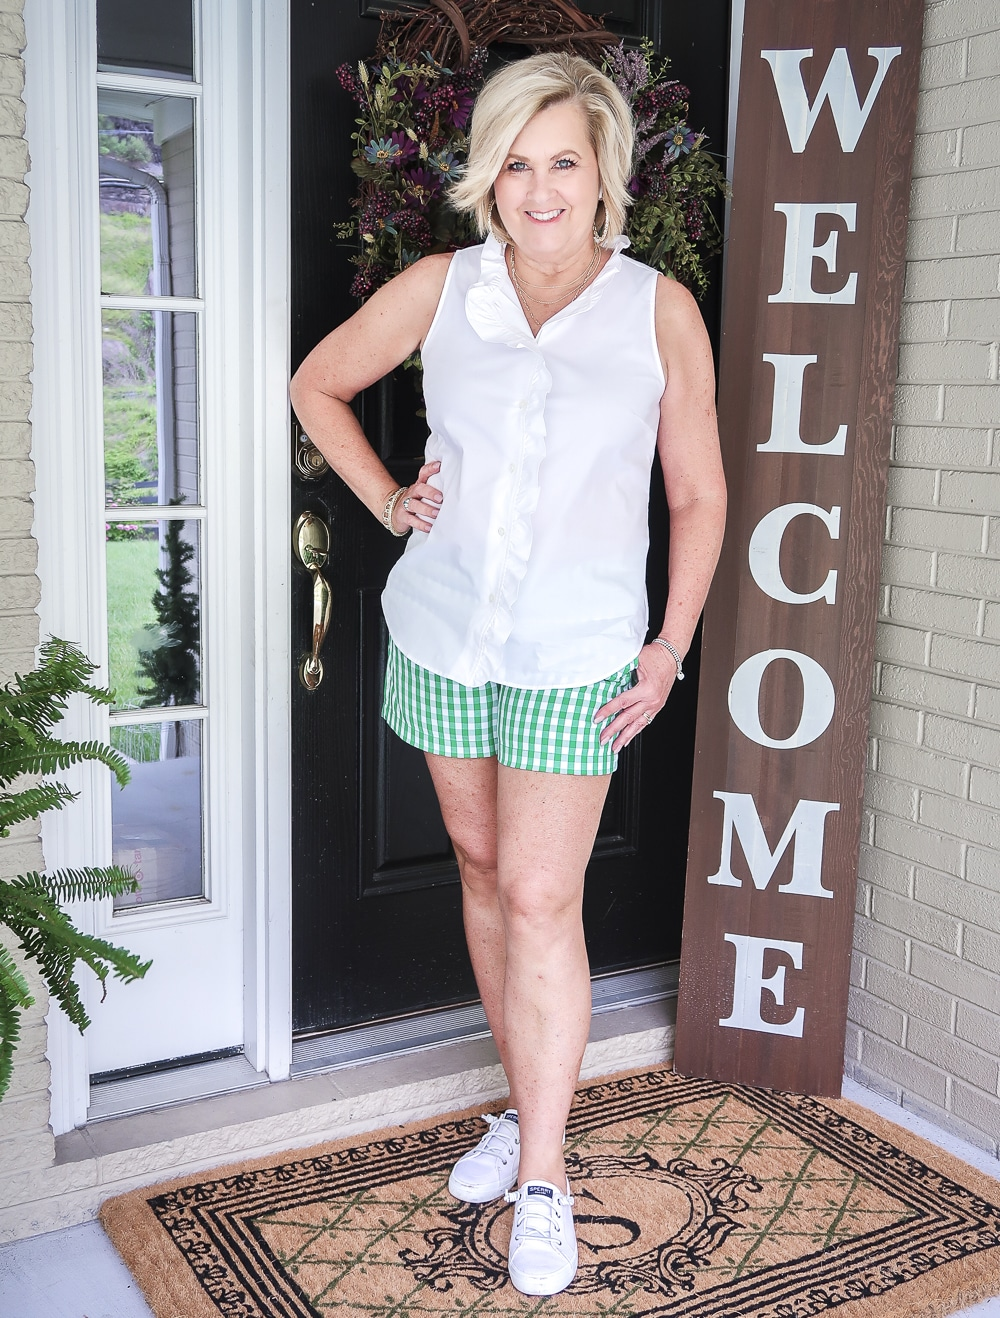 FASHION BLOGGER 50 Is Not Old wearing a sleeveless top with a ruffled neckline and green gingham shorts with a pair of Sperry slip on sneakers.